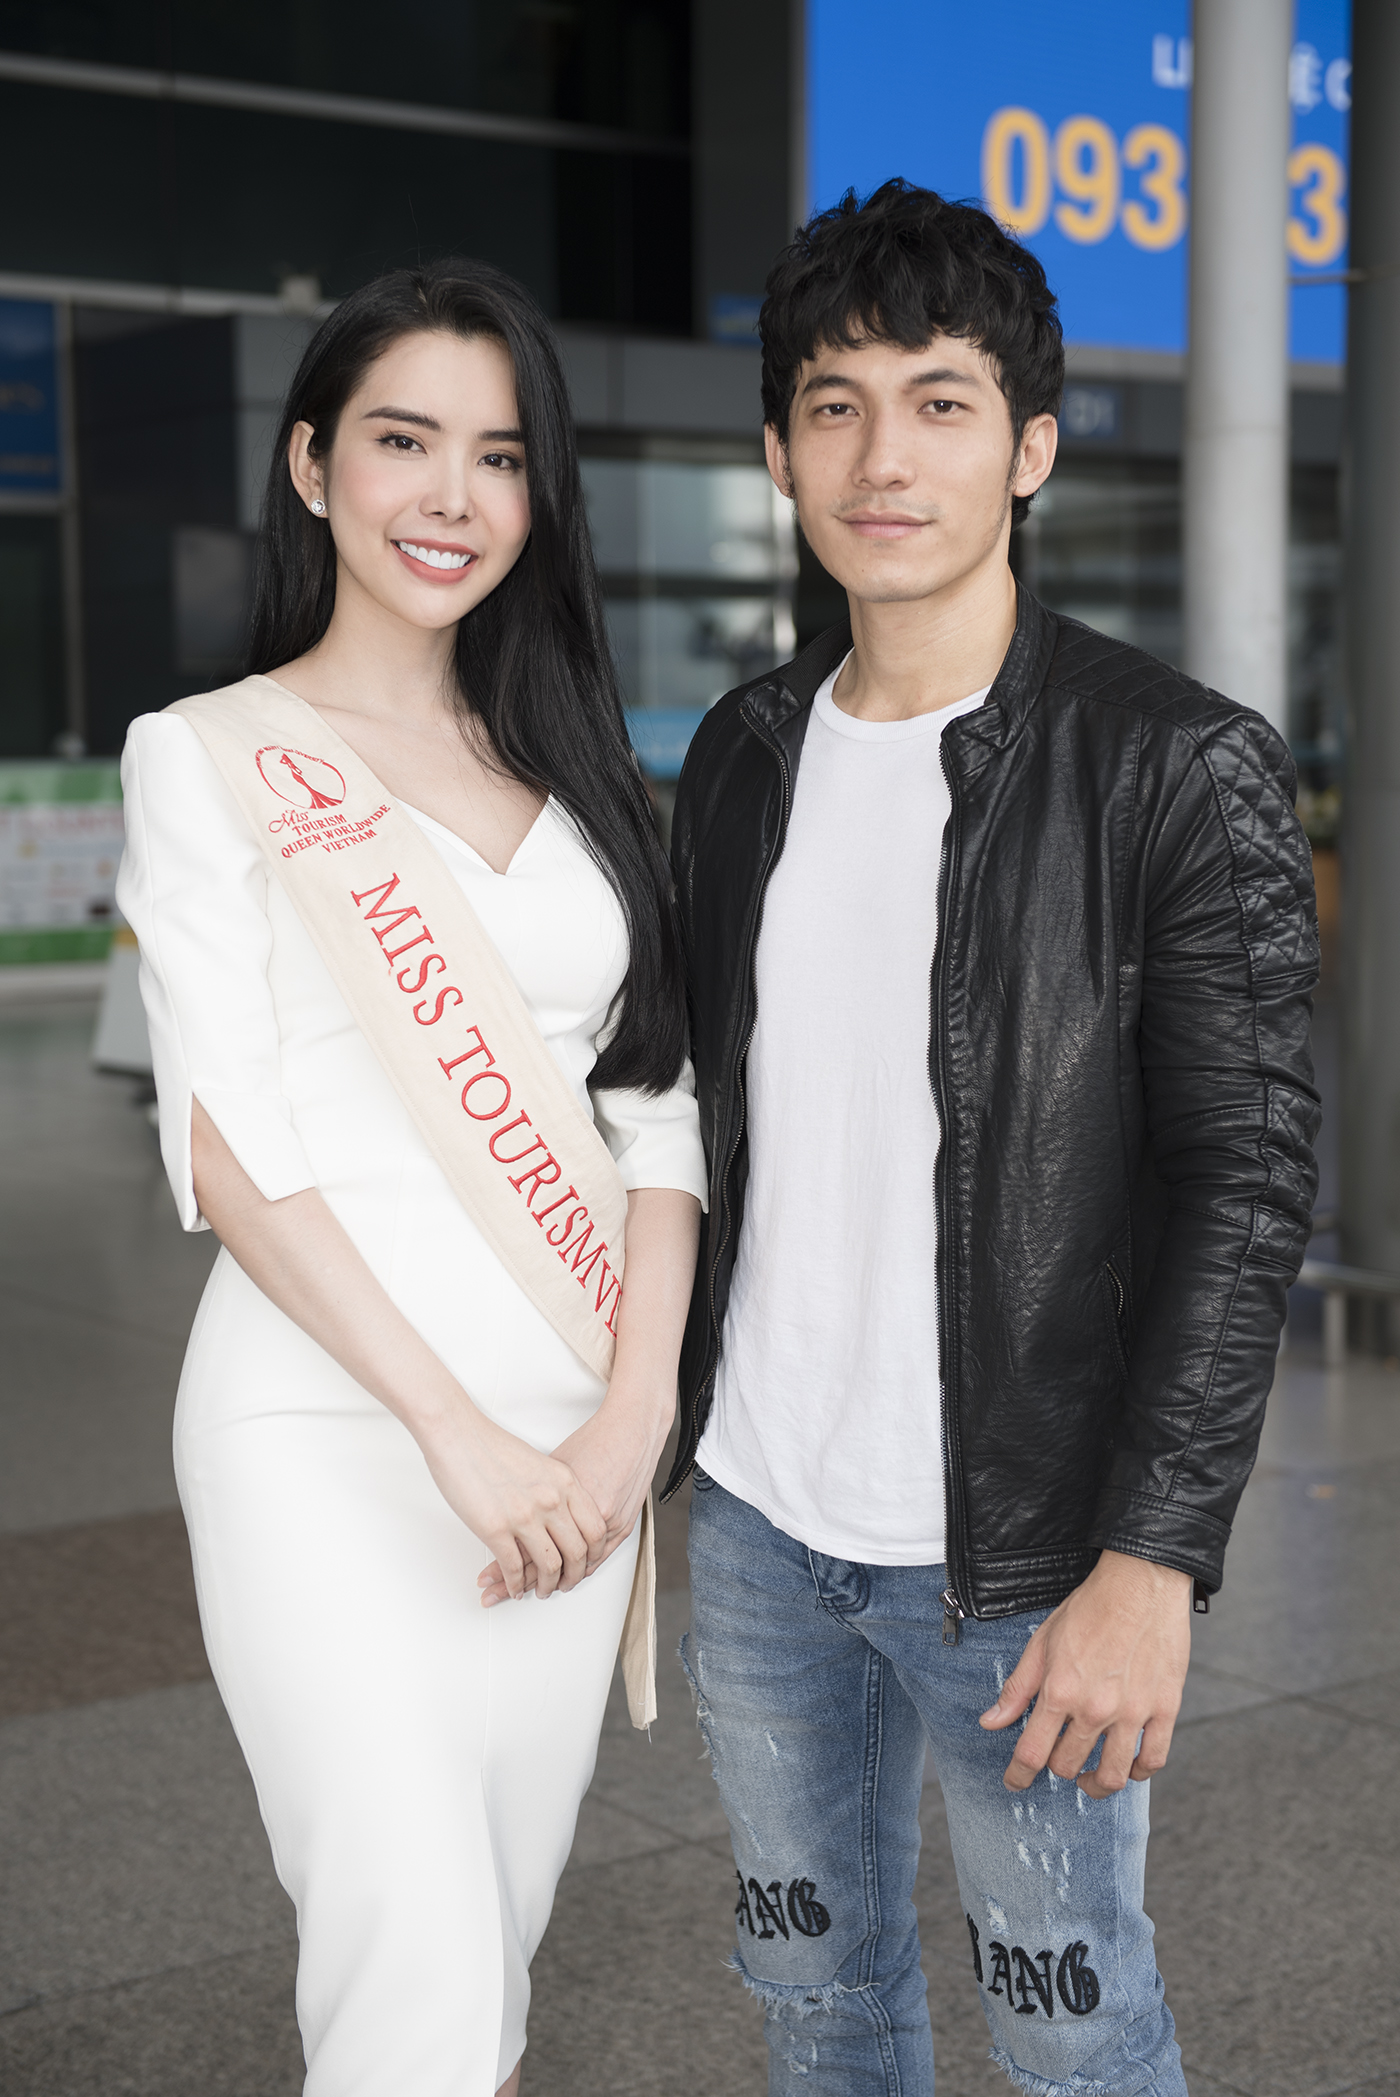 Lien Binh Phat tien Huynh Vy di thi Miss Tourism Queen Worldwide-Hinh-7